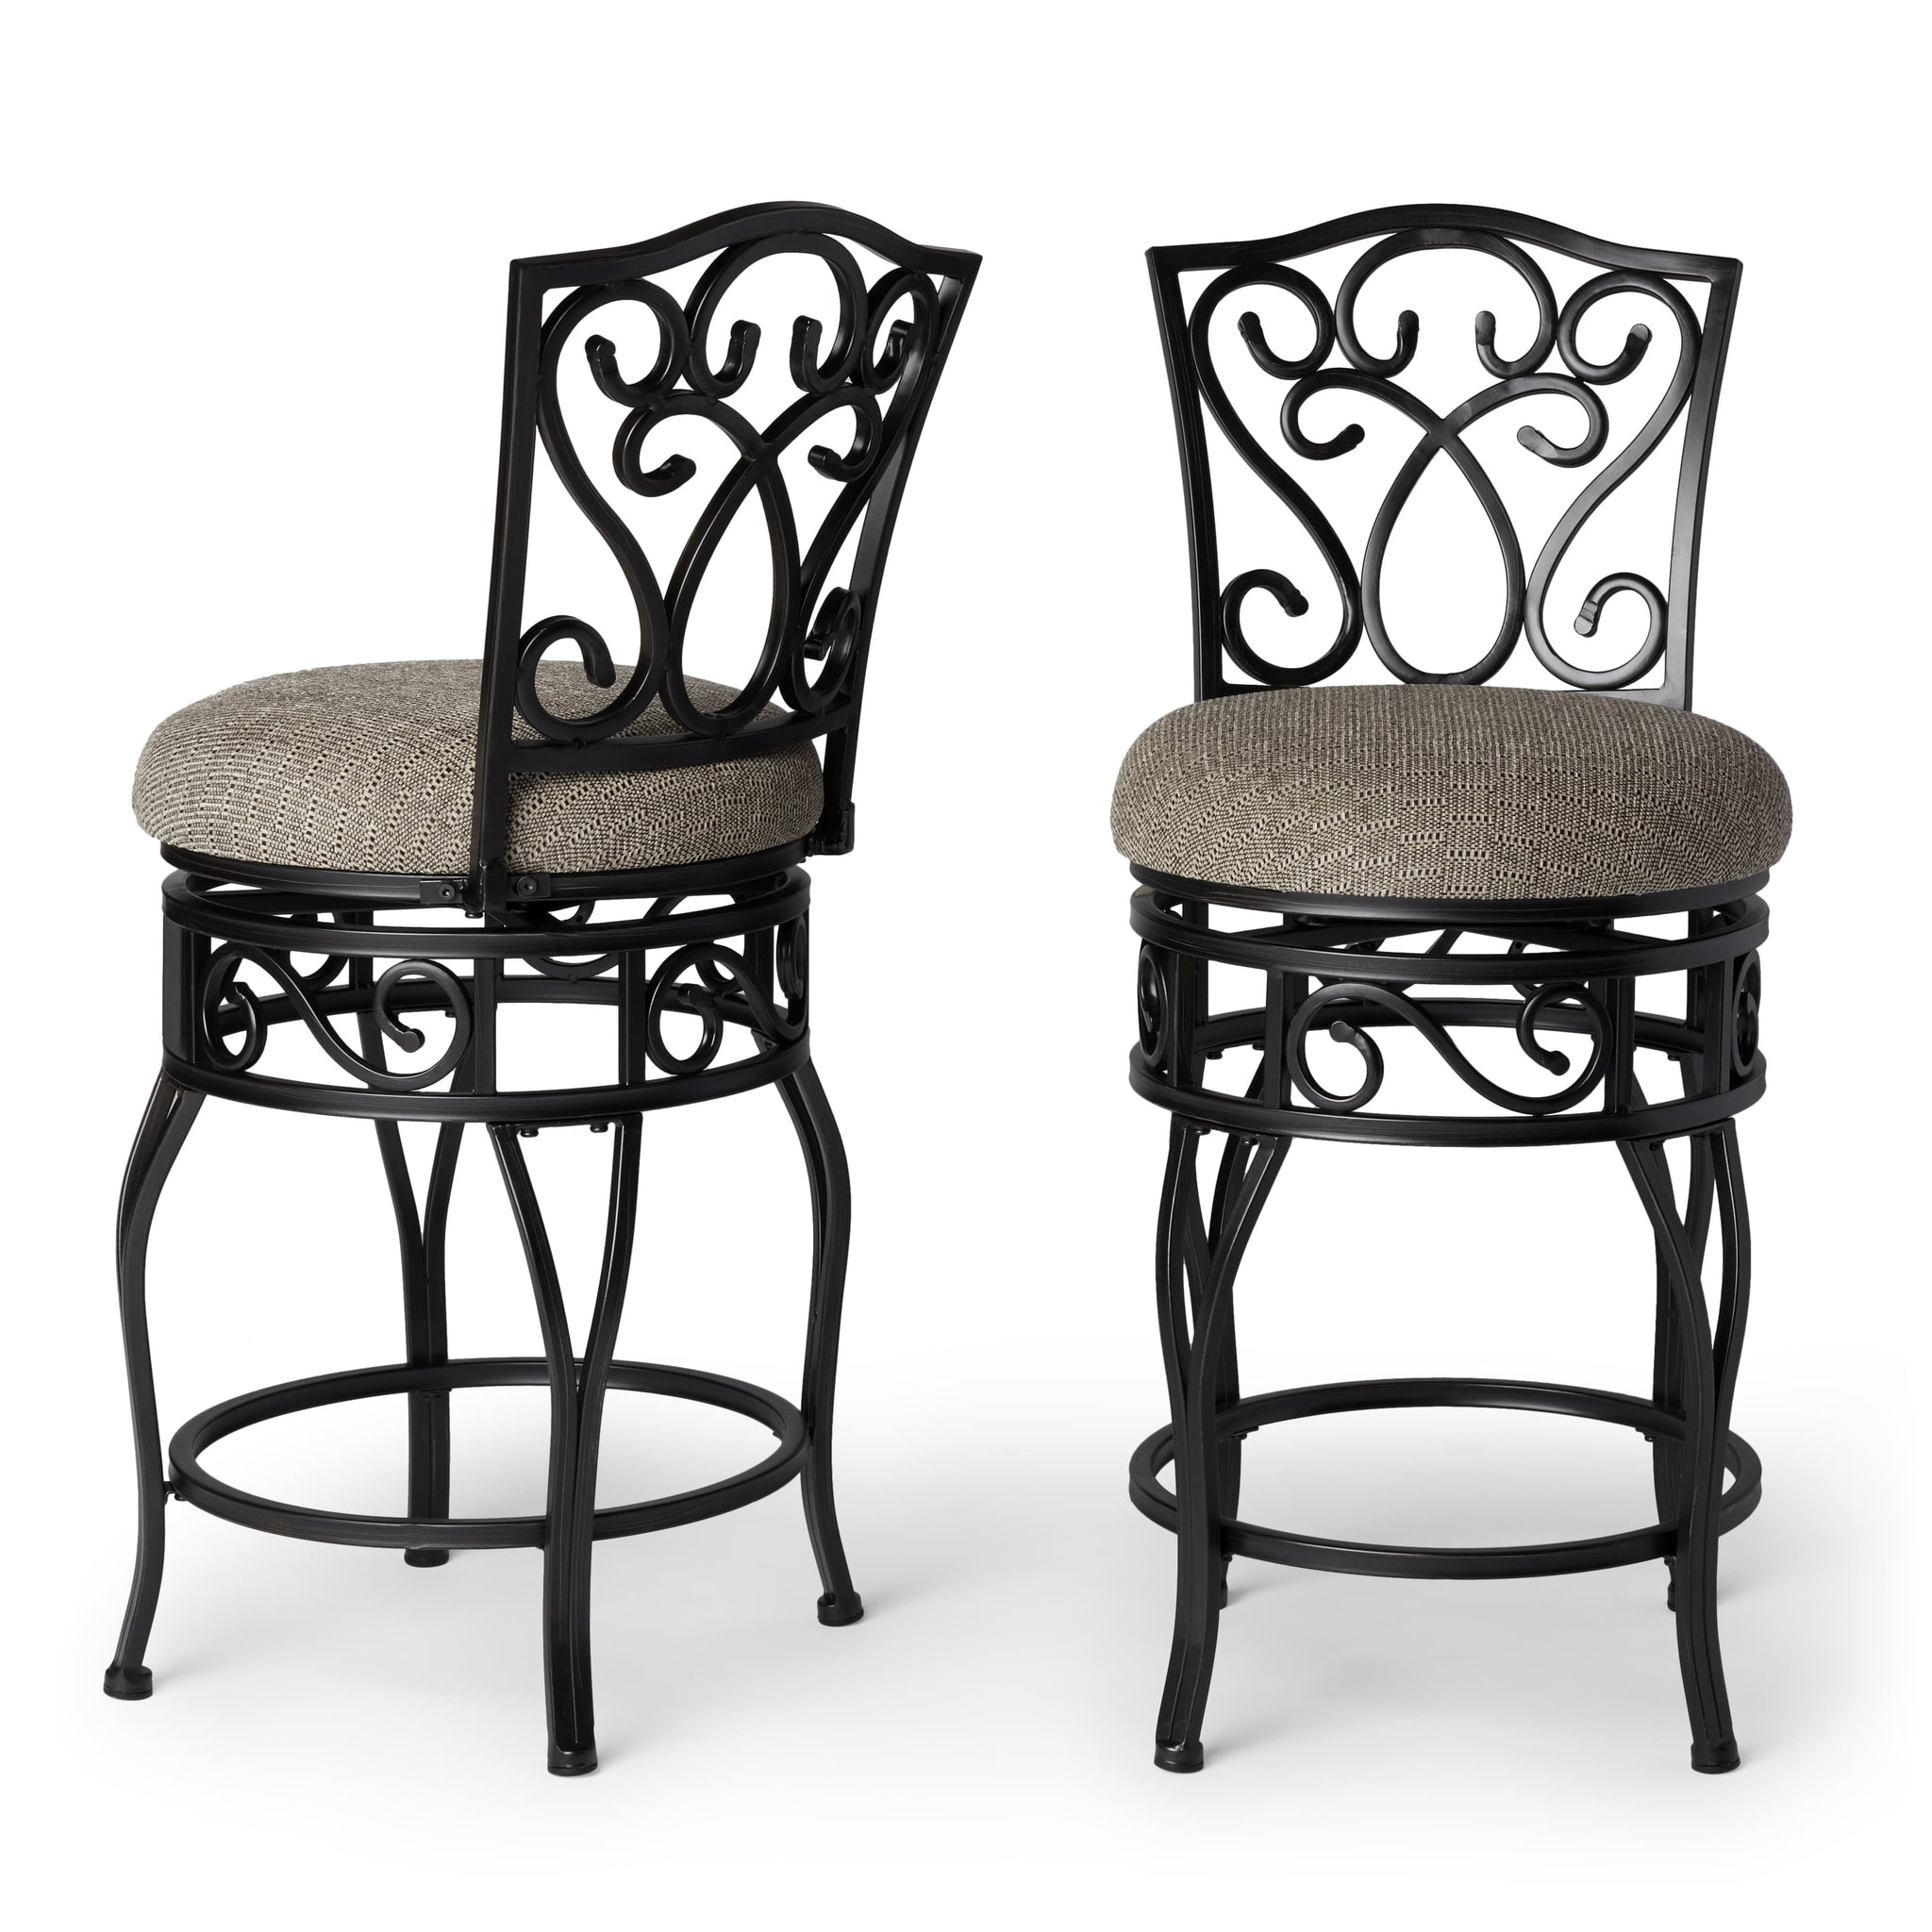 Brilliant 24 Inch Swivel Counter Stools Set Of 2 Caraccident5 Cool Chair Designs And Ideas Caraccident5Info